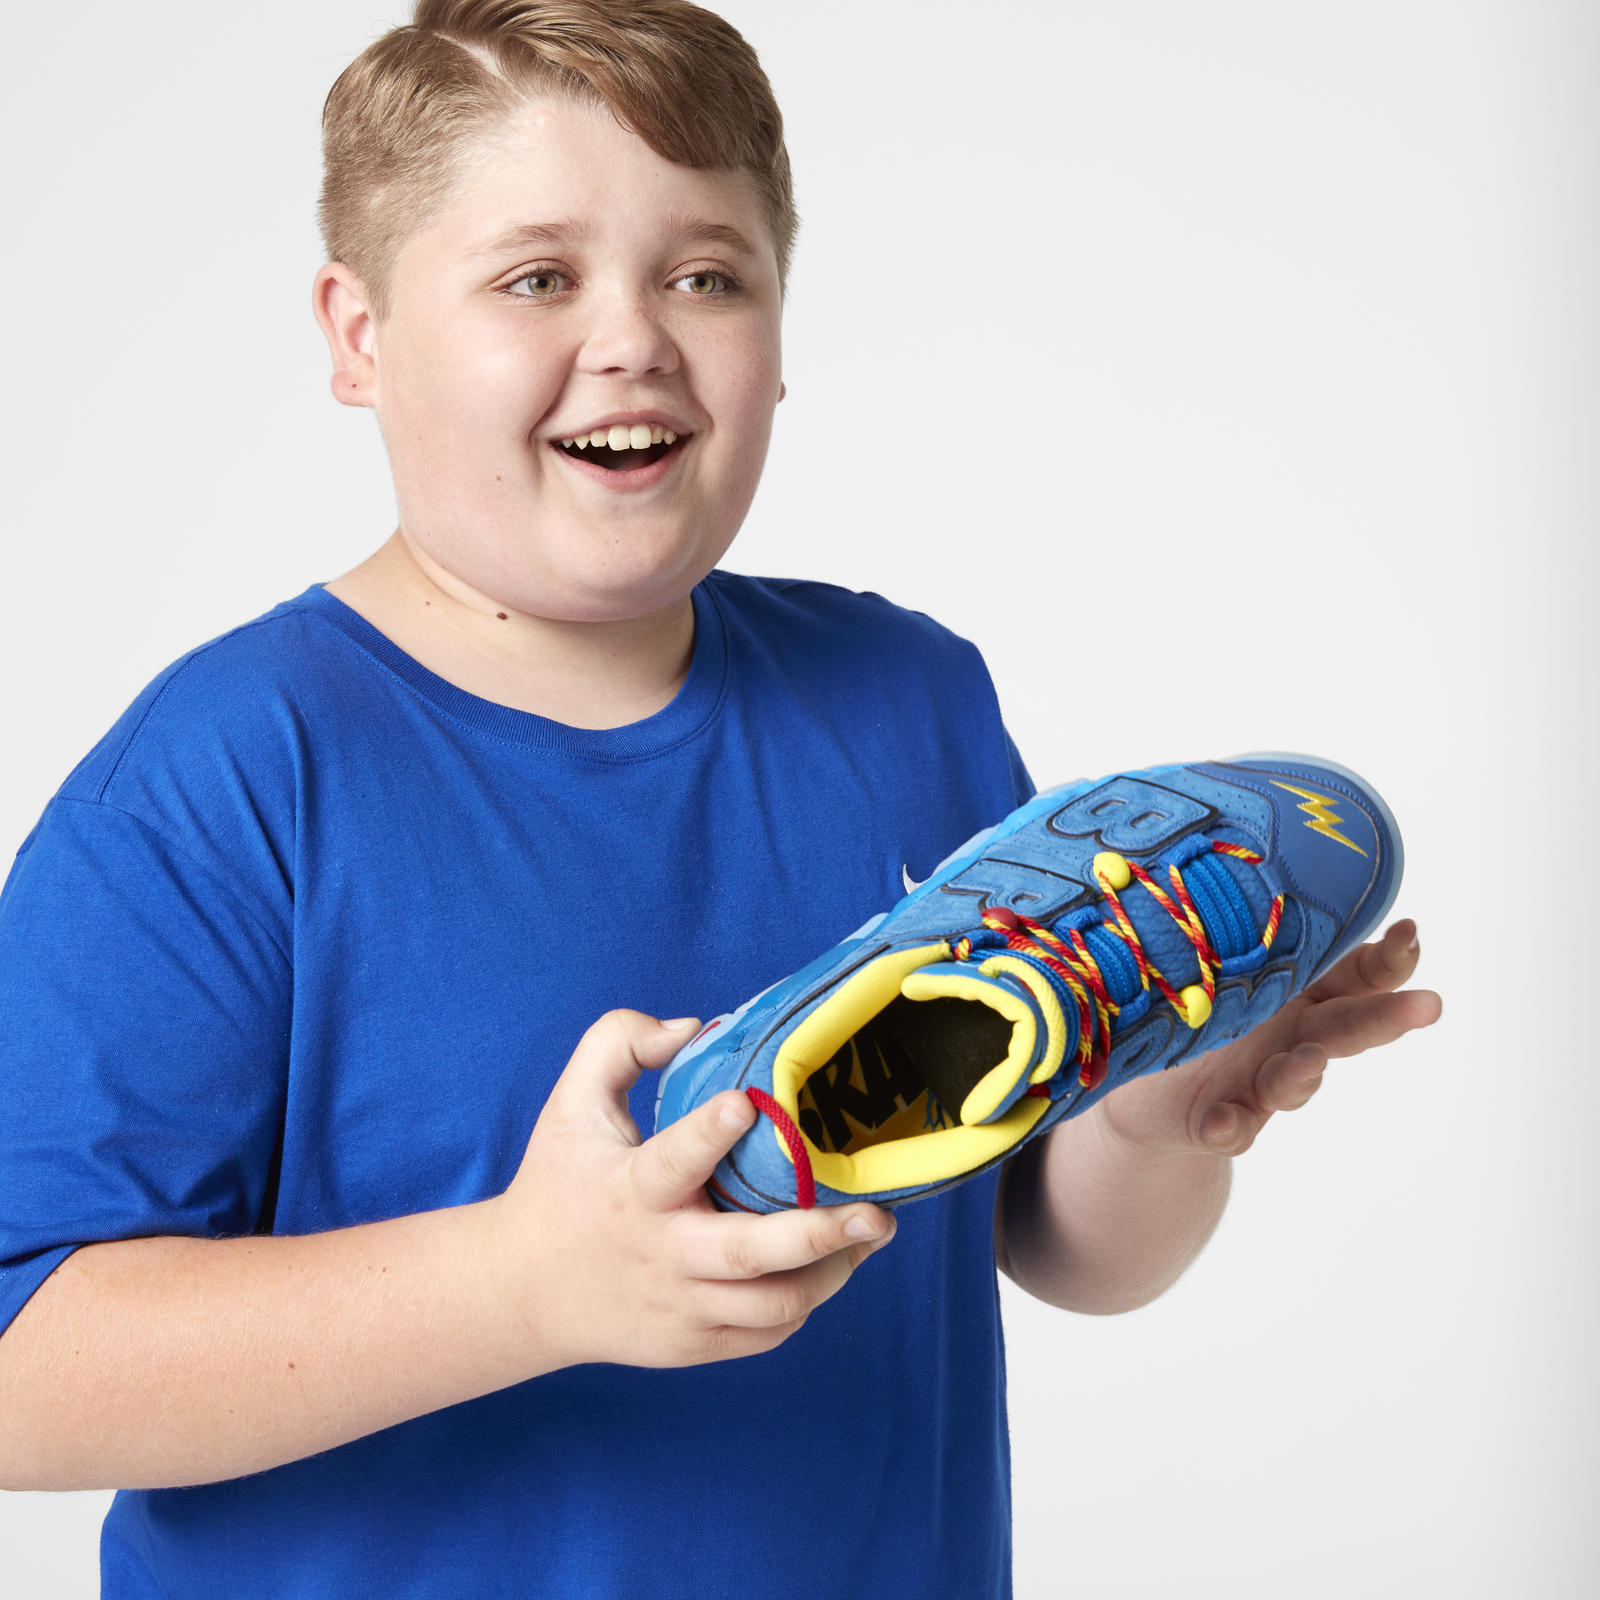 What the Doernbecher Freestyle Program Means to the Sneaker Community  22